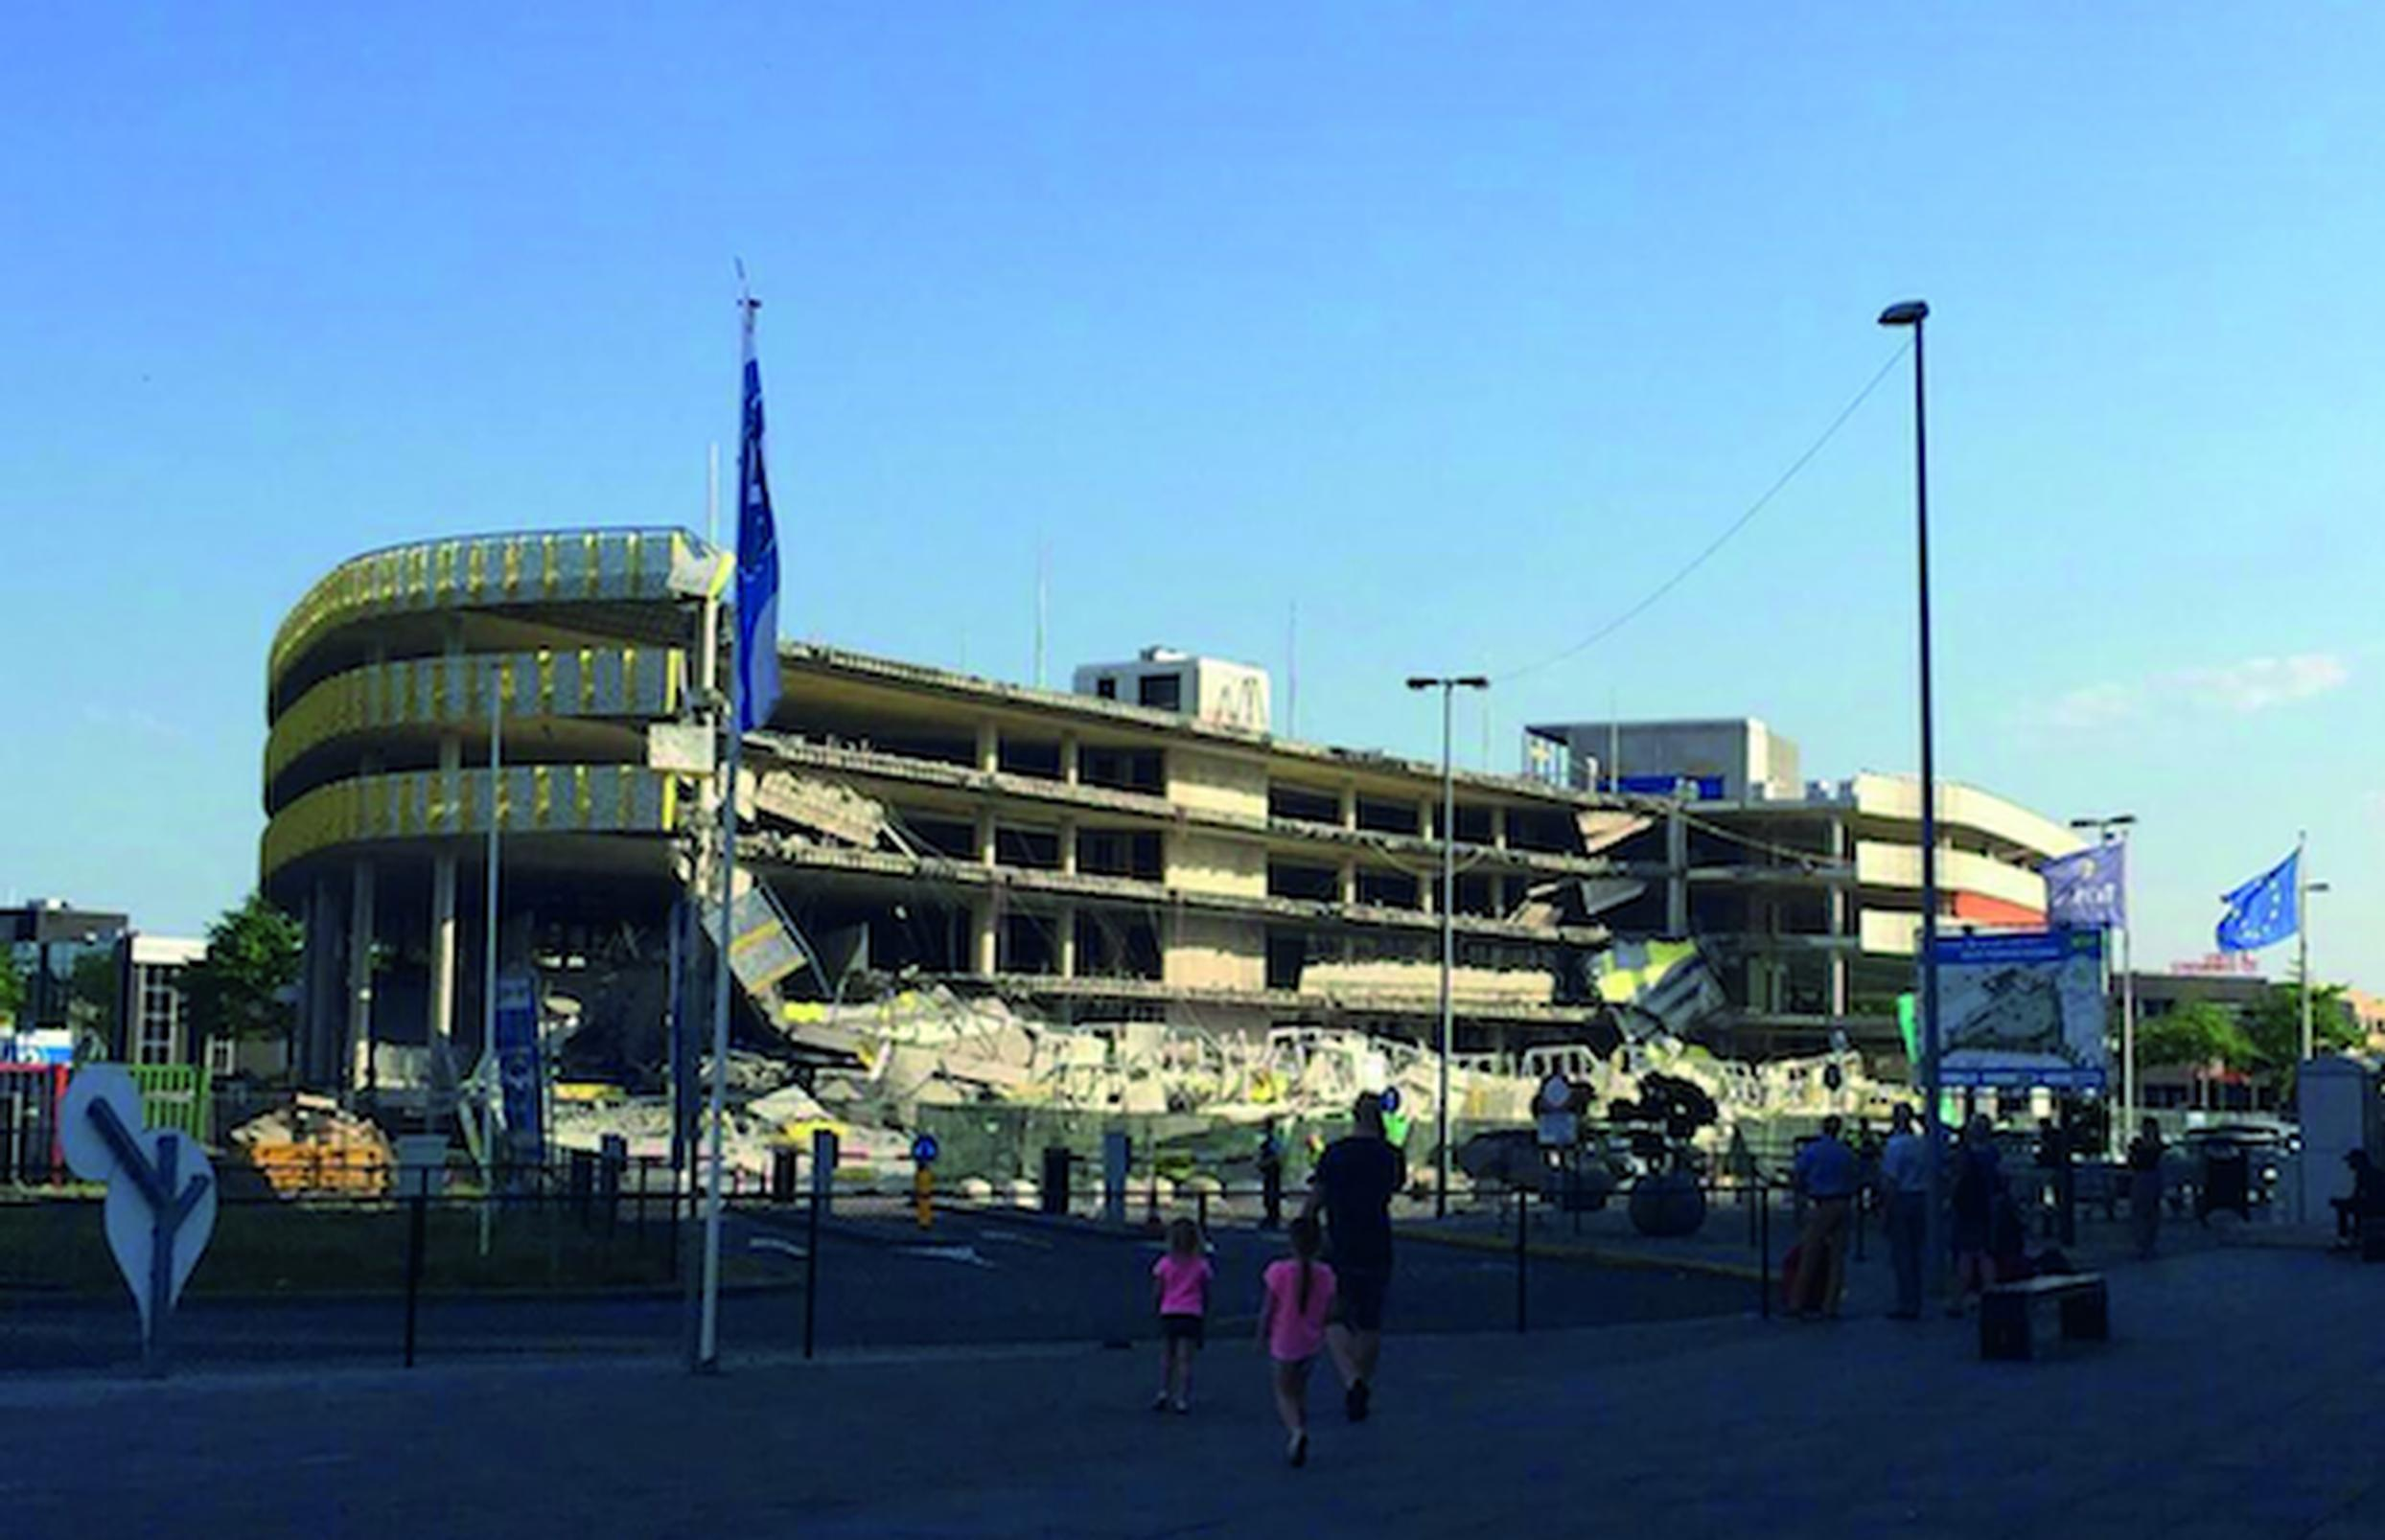 The new Eindhoven Airport car park collapsed while it was under construction